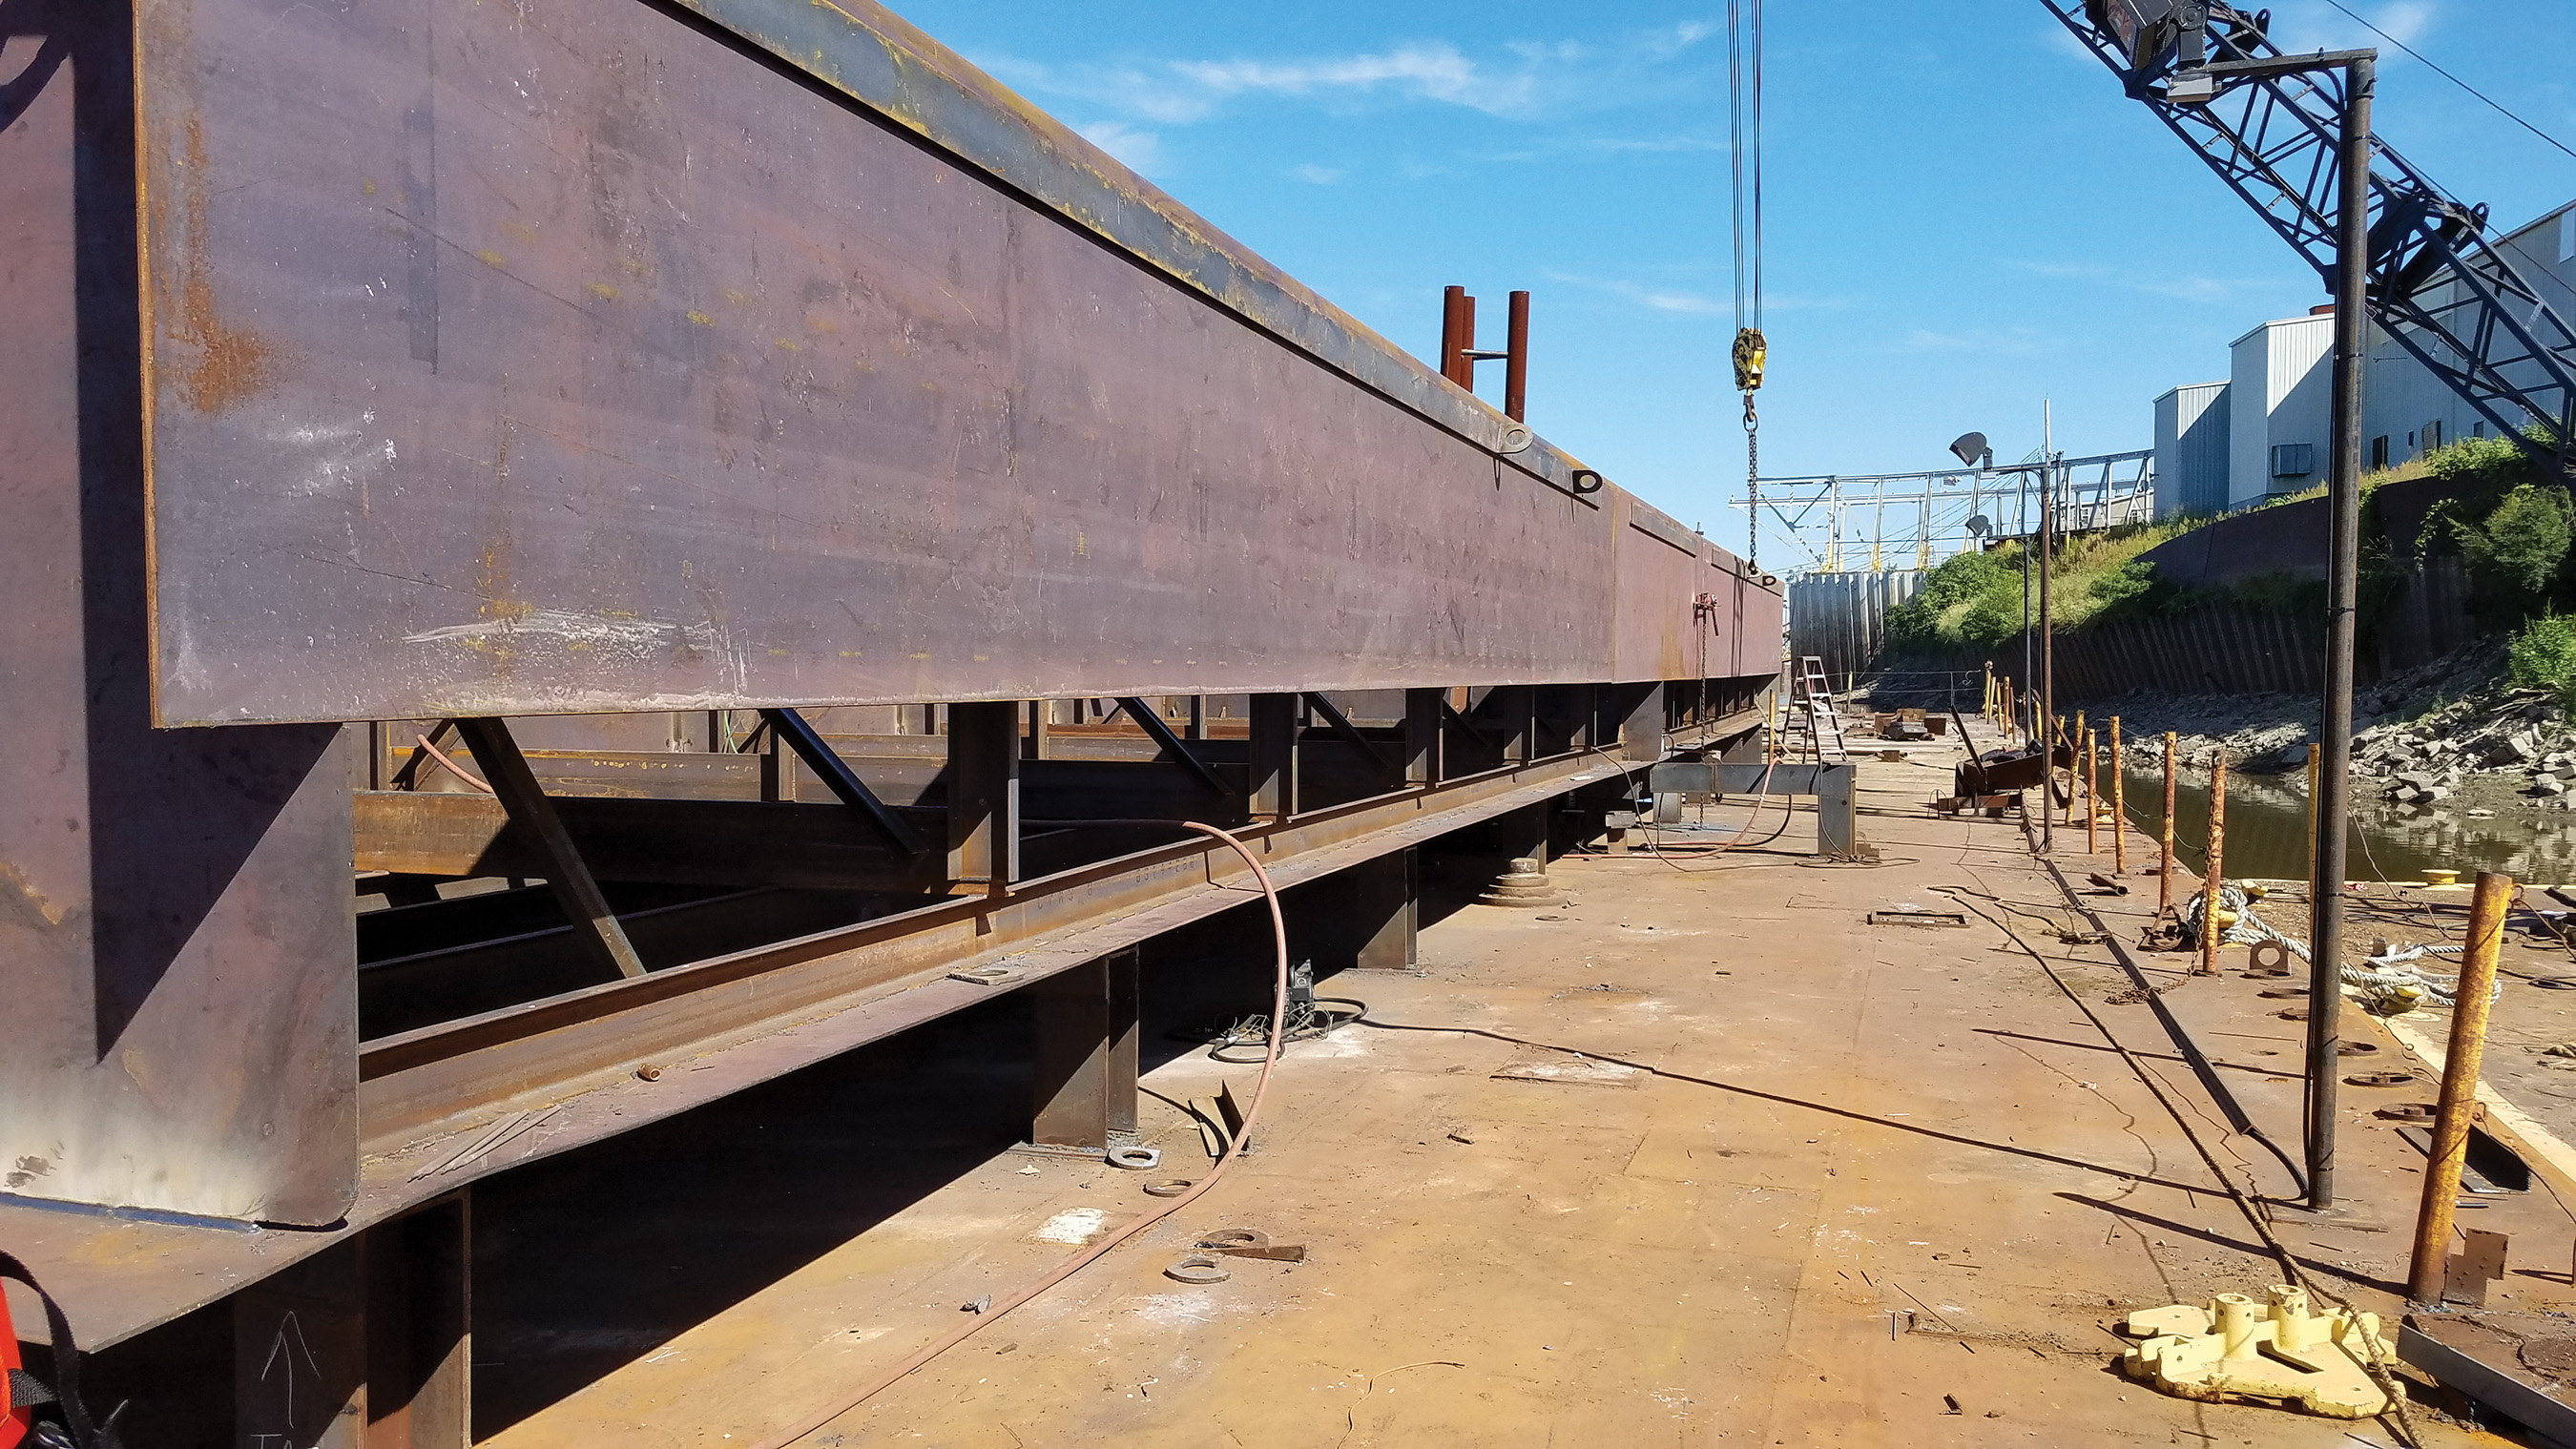 Progress is being made on the GDC-43, the first of two sand barges being built by National Maintenance Repair for Gateway Dredging & Contracting LLC.